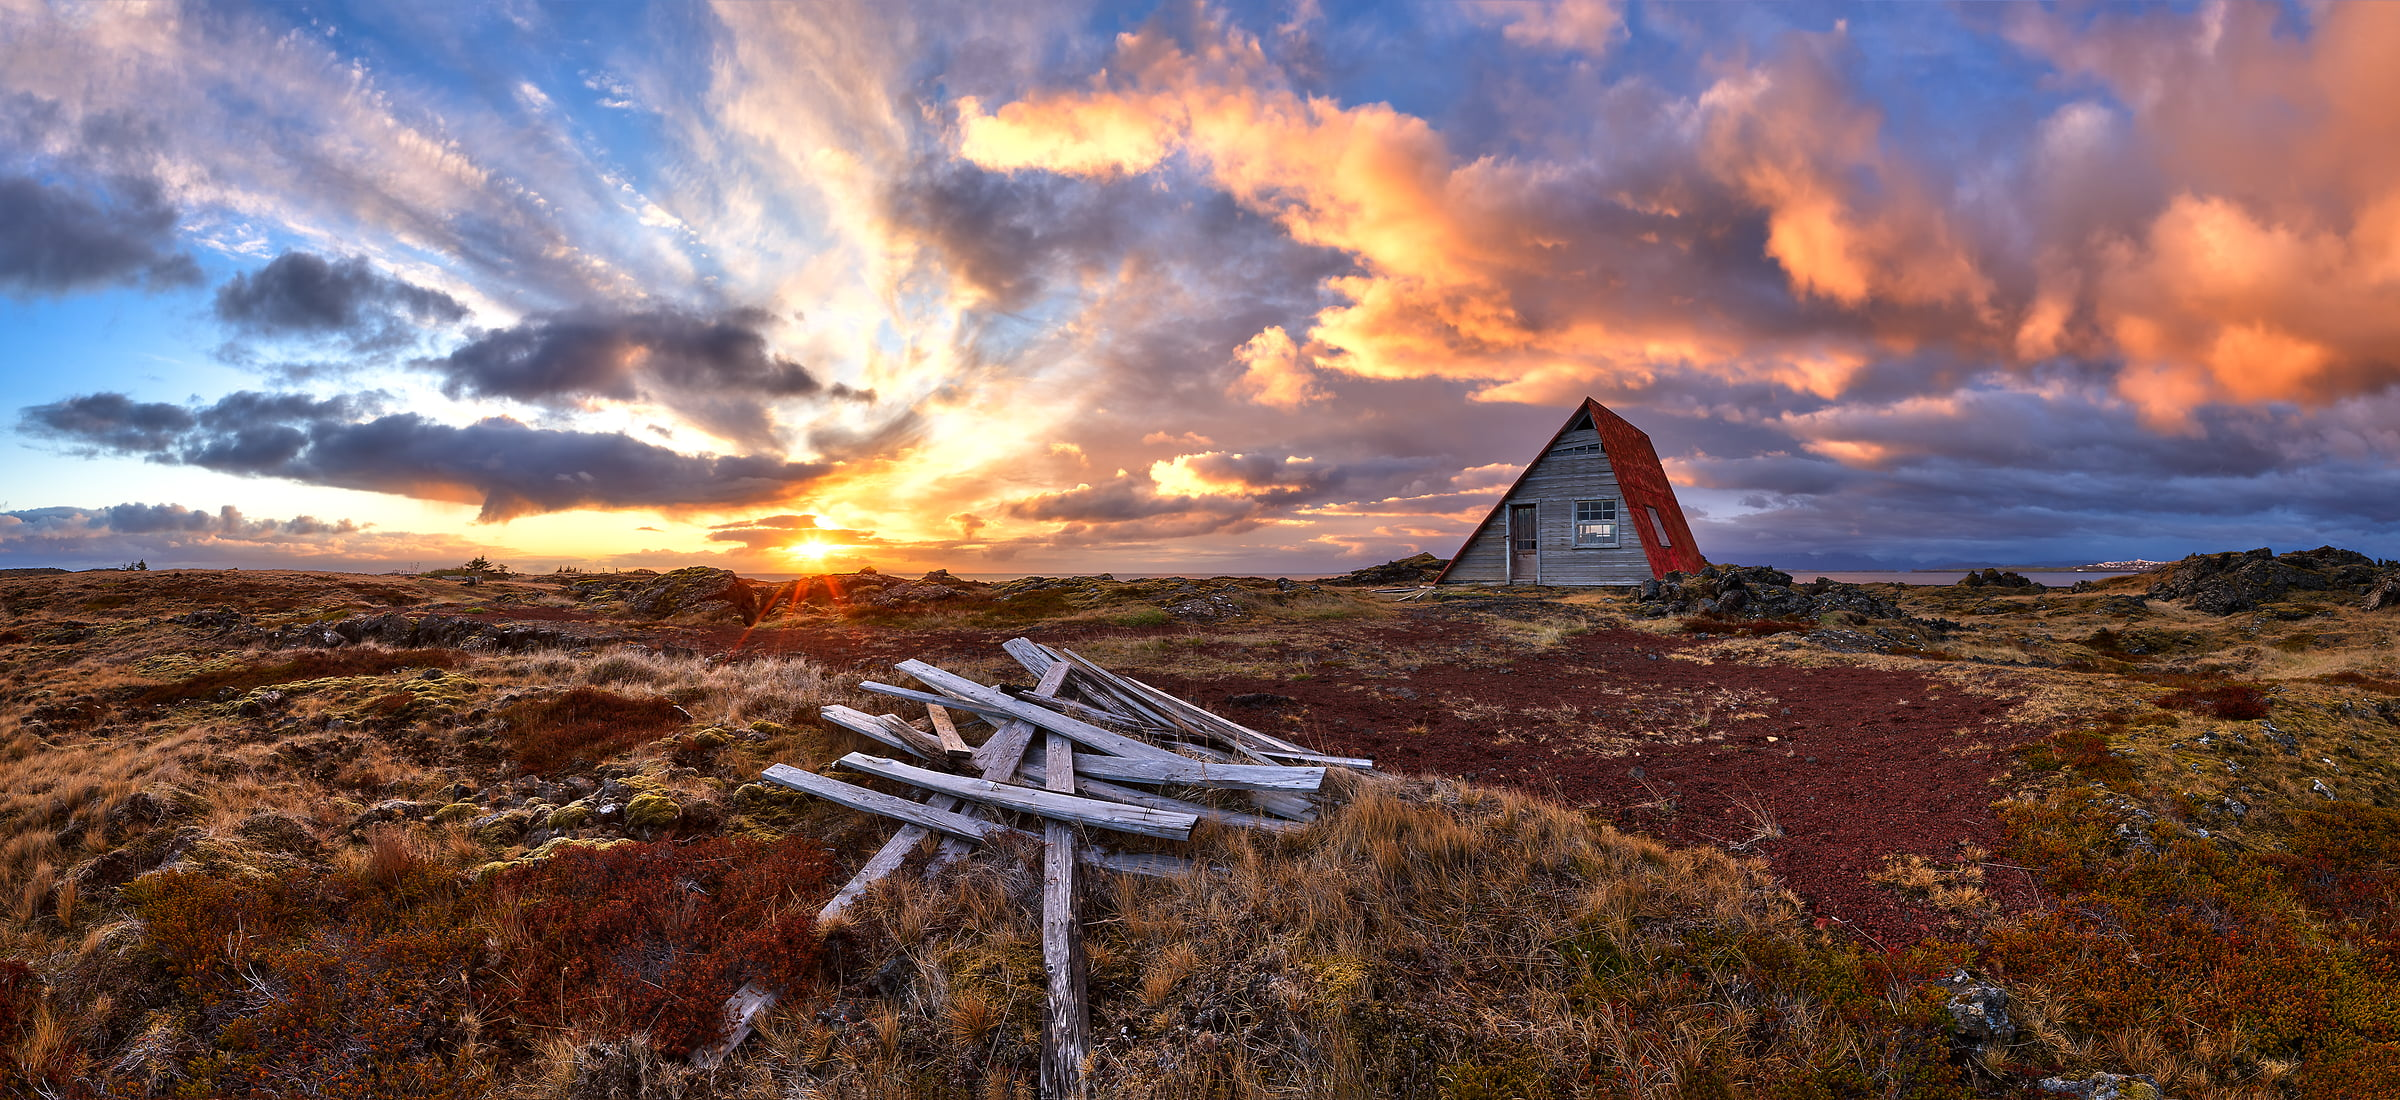 73 megapixels! A very high resolution, large-format VAST photo of an A-frame house in Iceland; fine art landscape photo created at sunset by Scott Dimond on the Great Plains in the Capital Region of Iceland